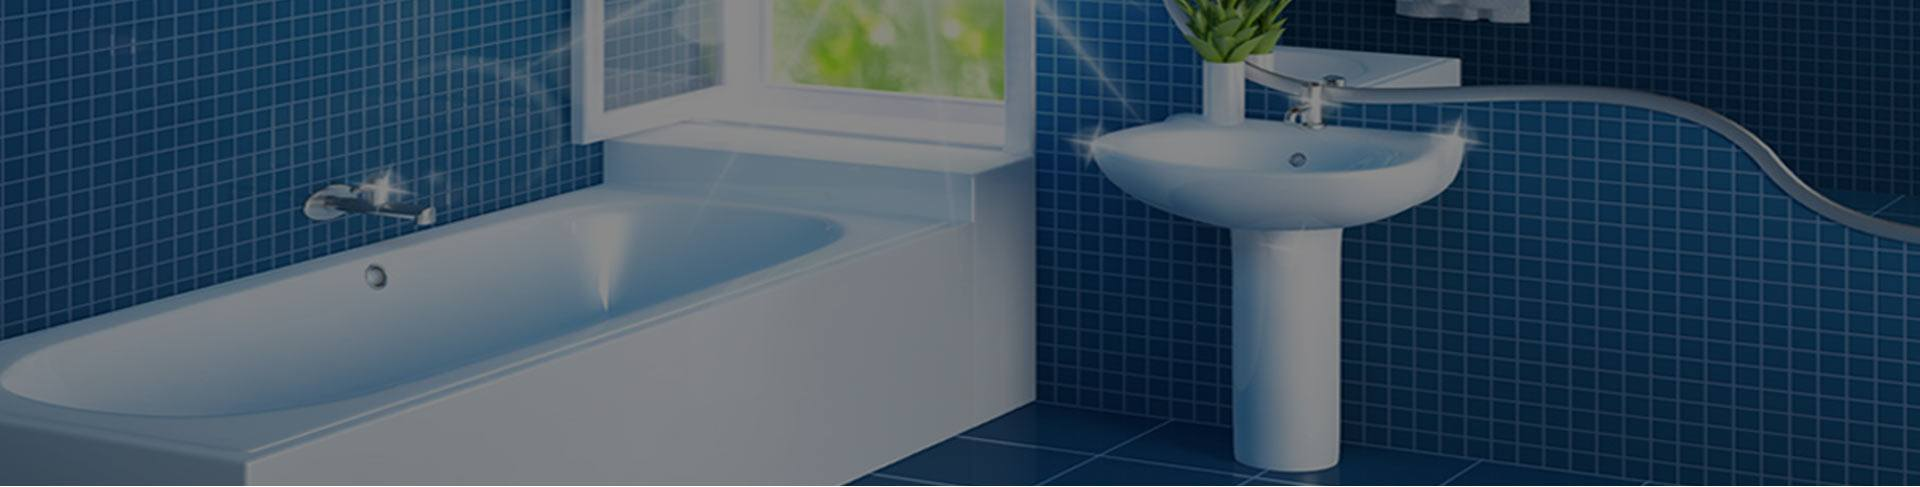 Bathtub Refinishing Cost and Process – Bathart Refinishing